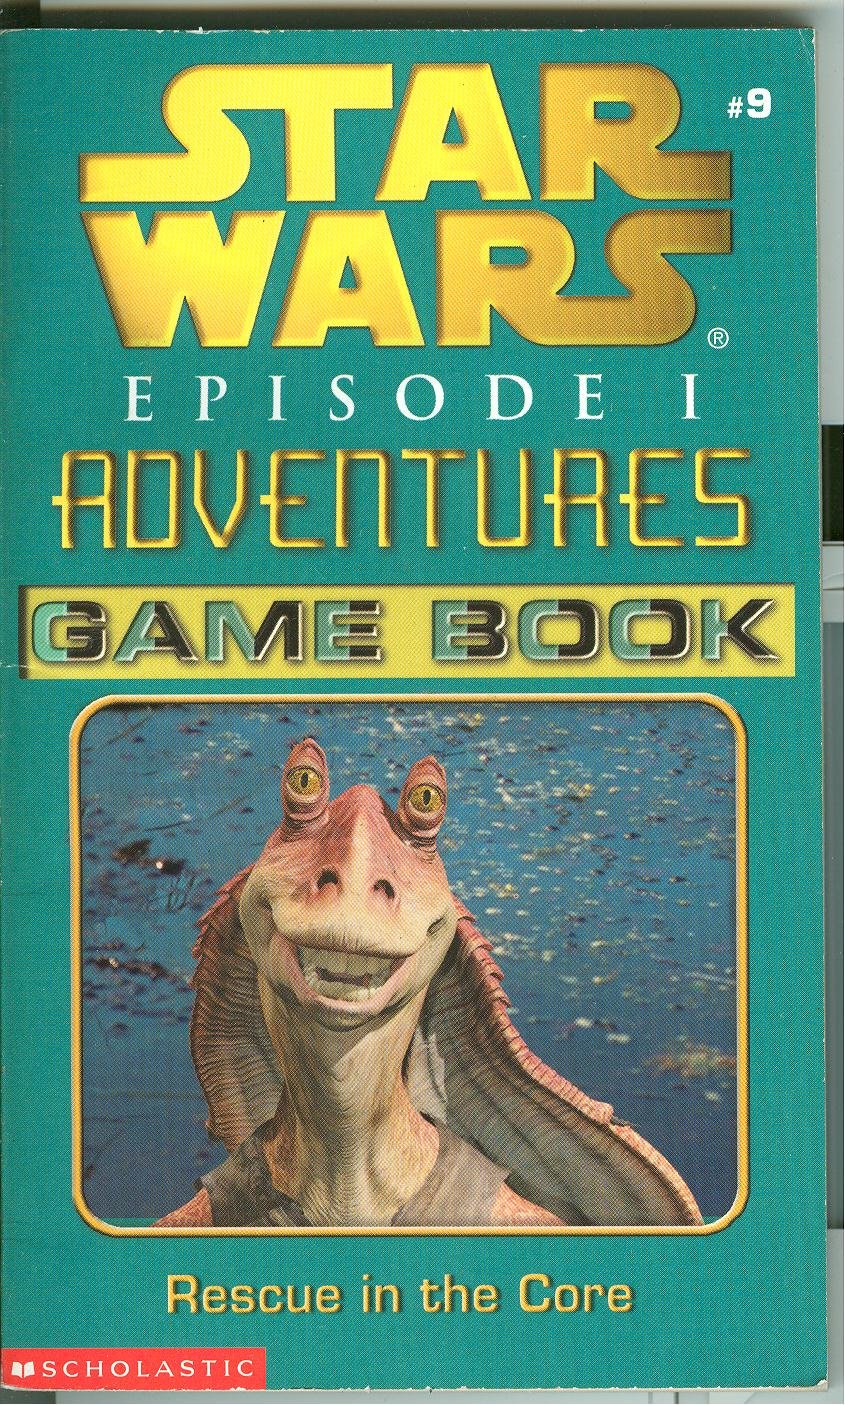 Star Wars Episode I Adventures Game Book: Rescue in the Core